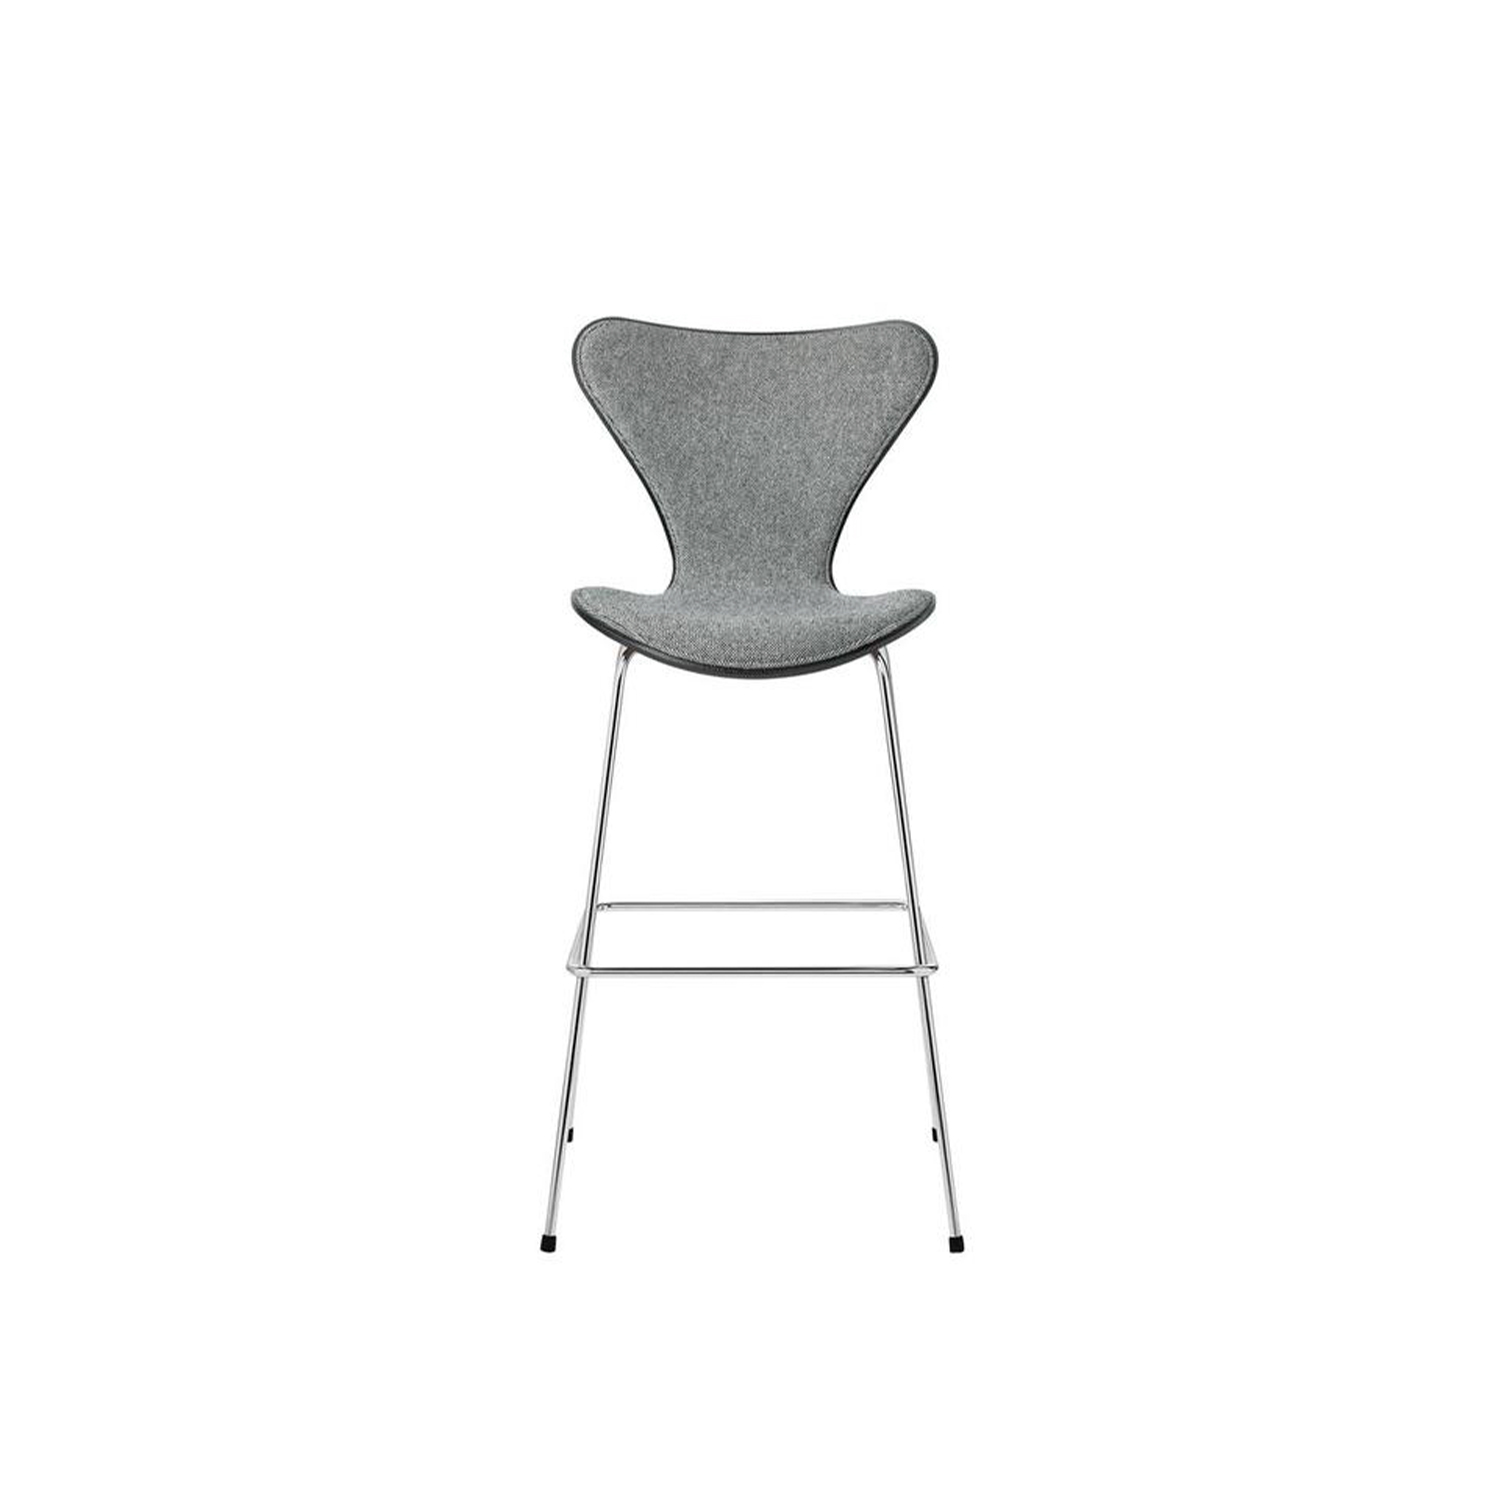 Series 7 Bar Stool Front Upholstered - The Series 7 barstool is a beautiful, functional and urban extension of the classic Series 7 chair designed by Arne Jacobsen in 1955.